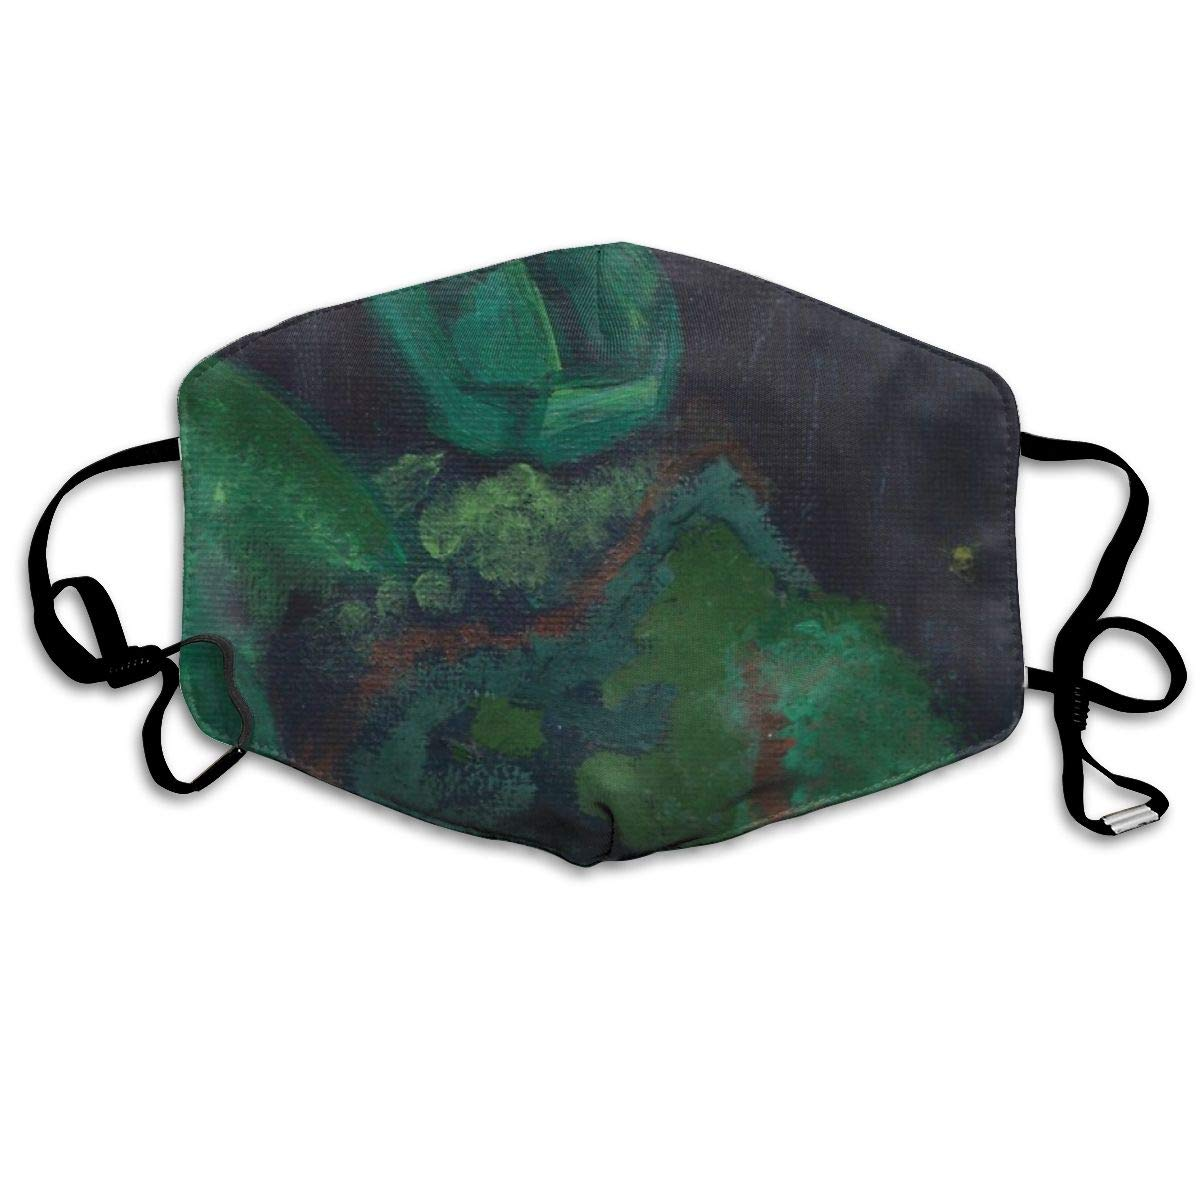 Attwood Wheat Adjustable Half Face Mouth Masks World Turtle Painting-01 Masks for Flu Unisex Masks for Germ Protection